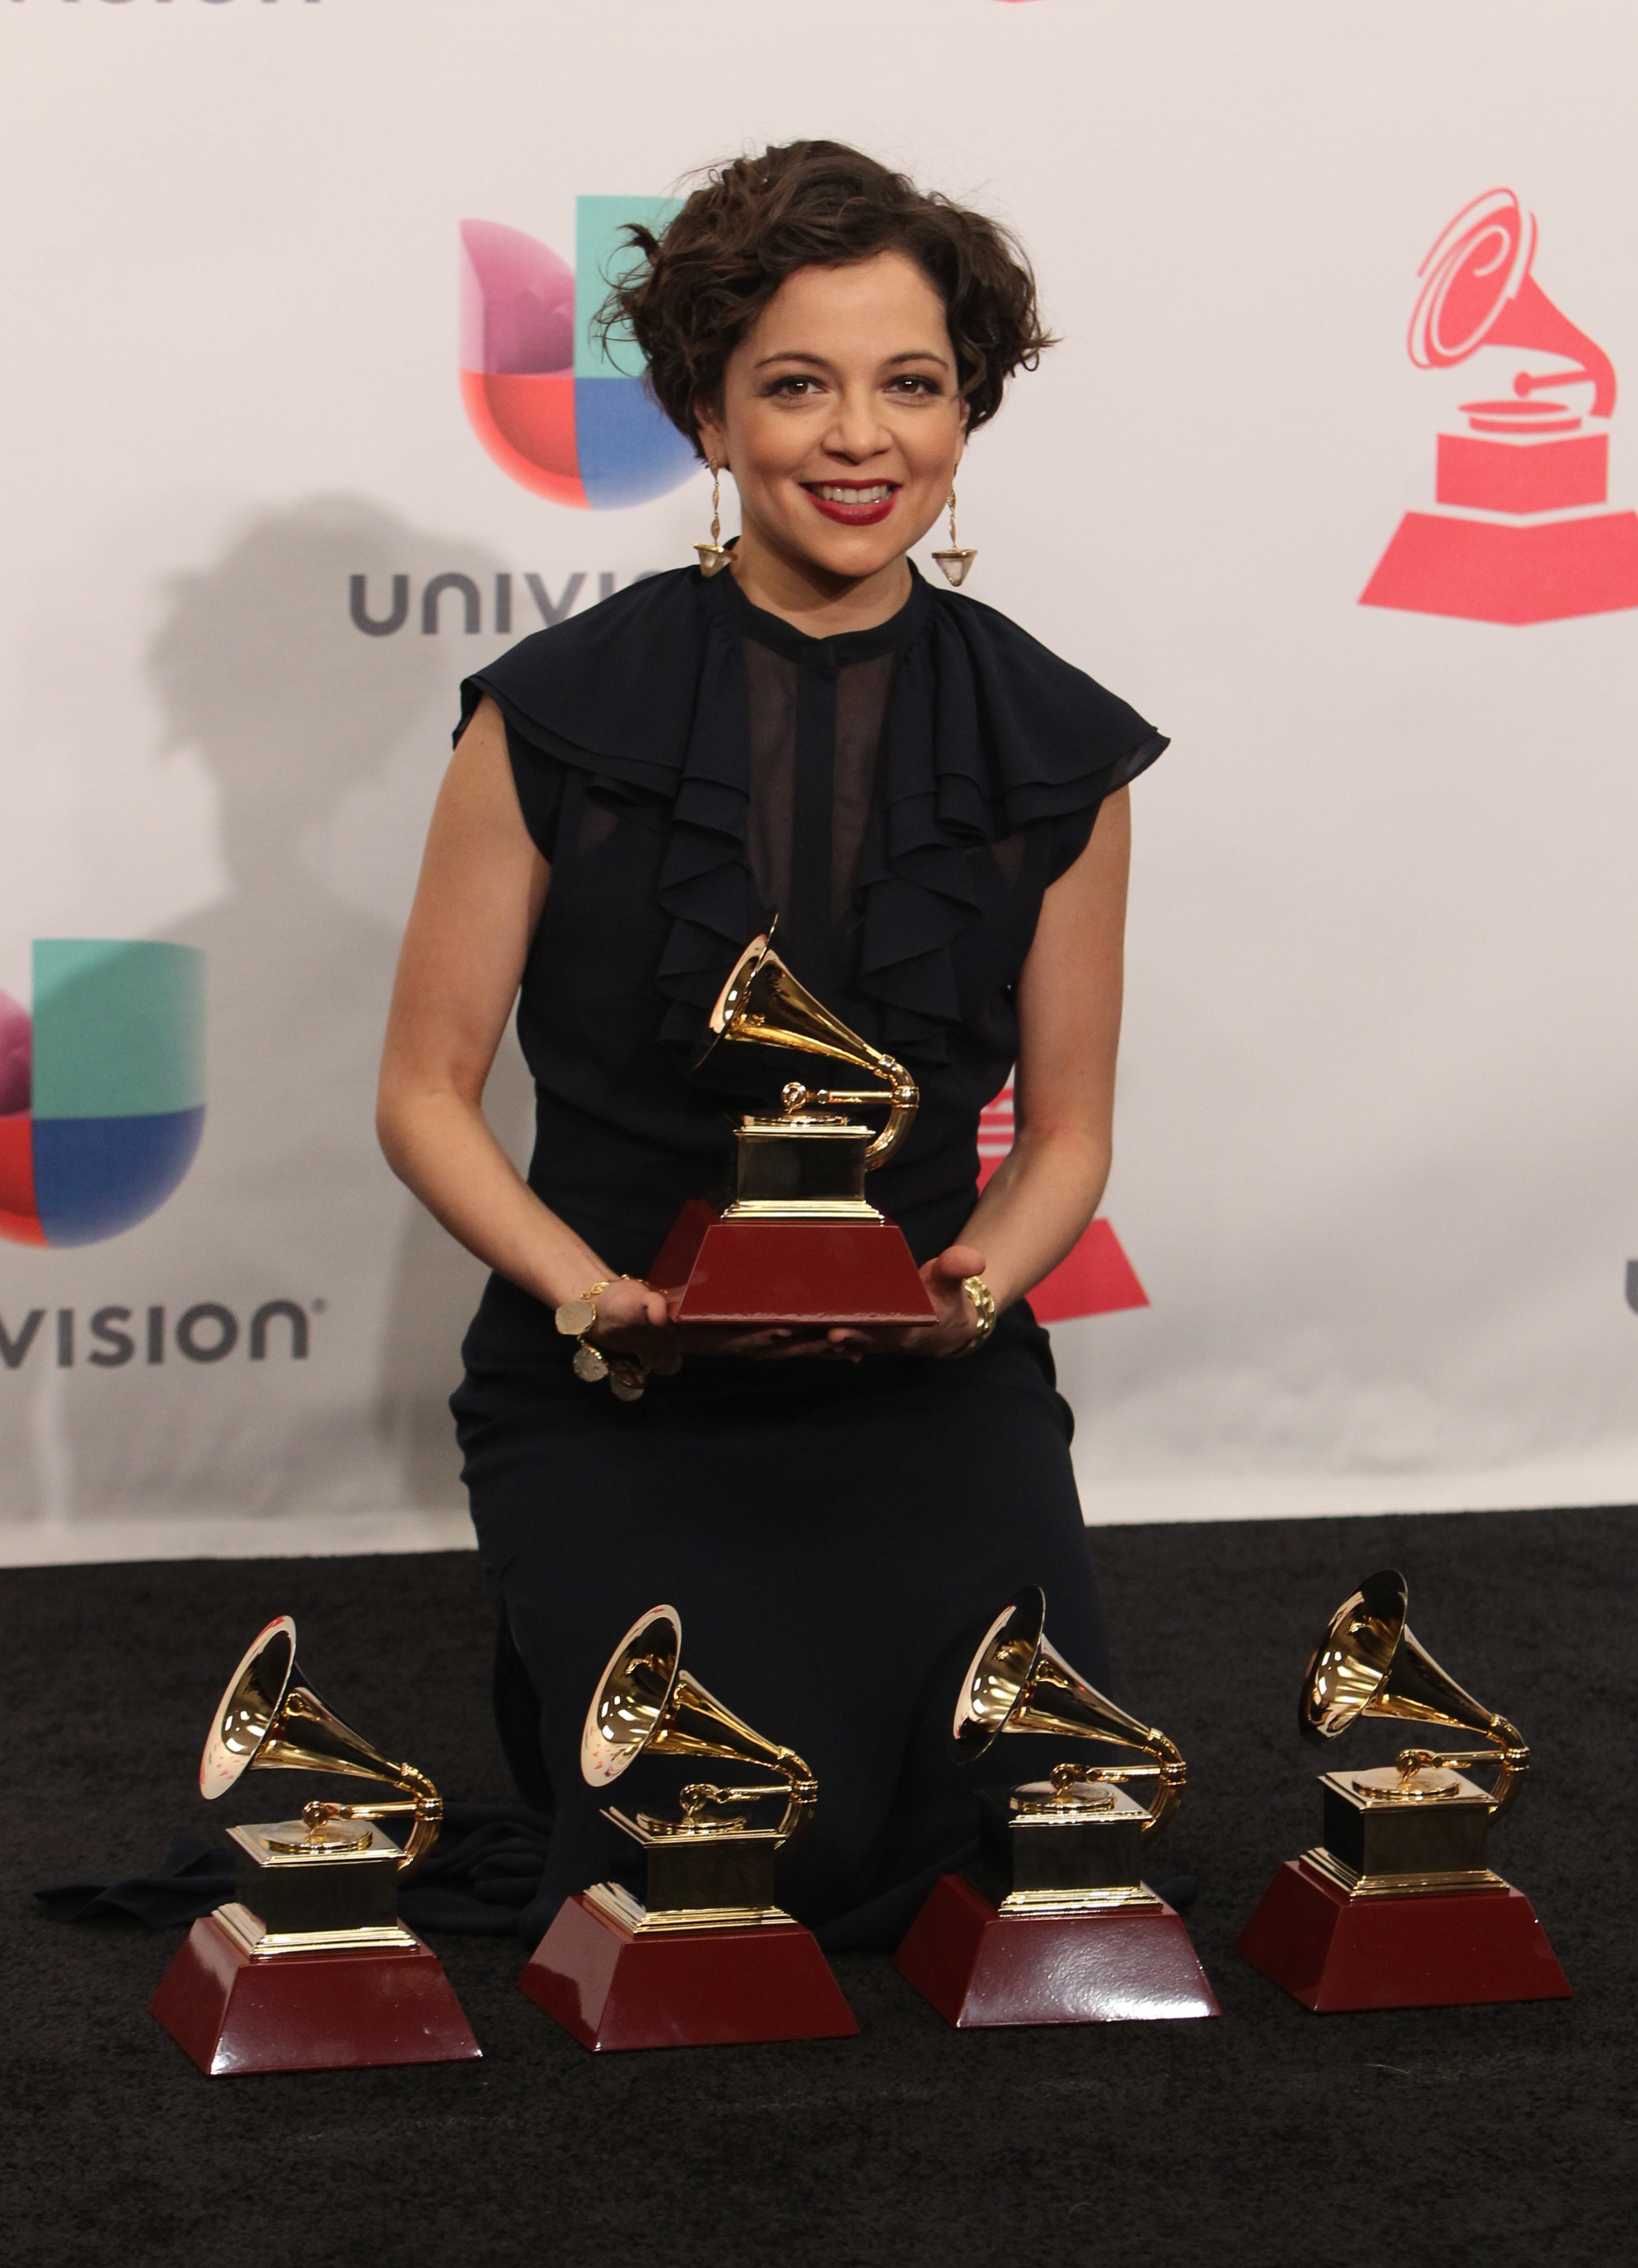 Natalia Lafourcade poses with the trophy during the 16th Annual Latin Grammy Awards on November 19, 2015, in Las Vegas, Nevada. AFP PHOTO/CHRIS FARINA / AFP / CHRIS FARINA